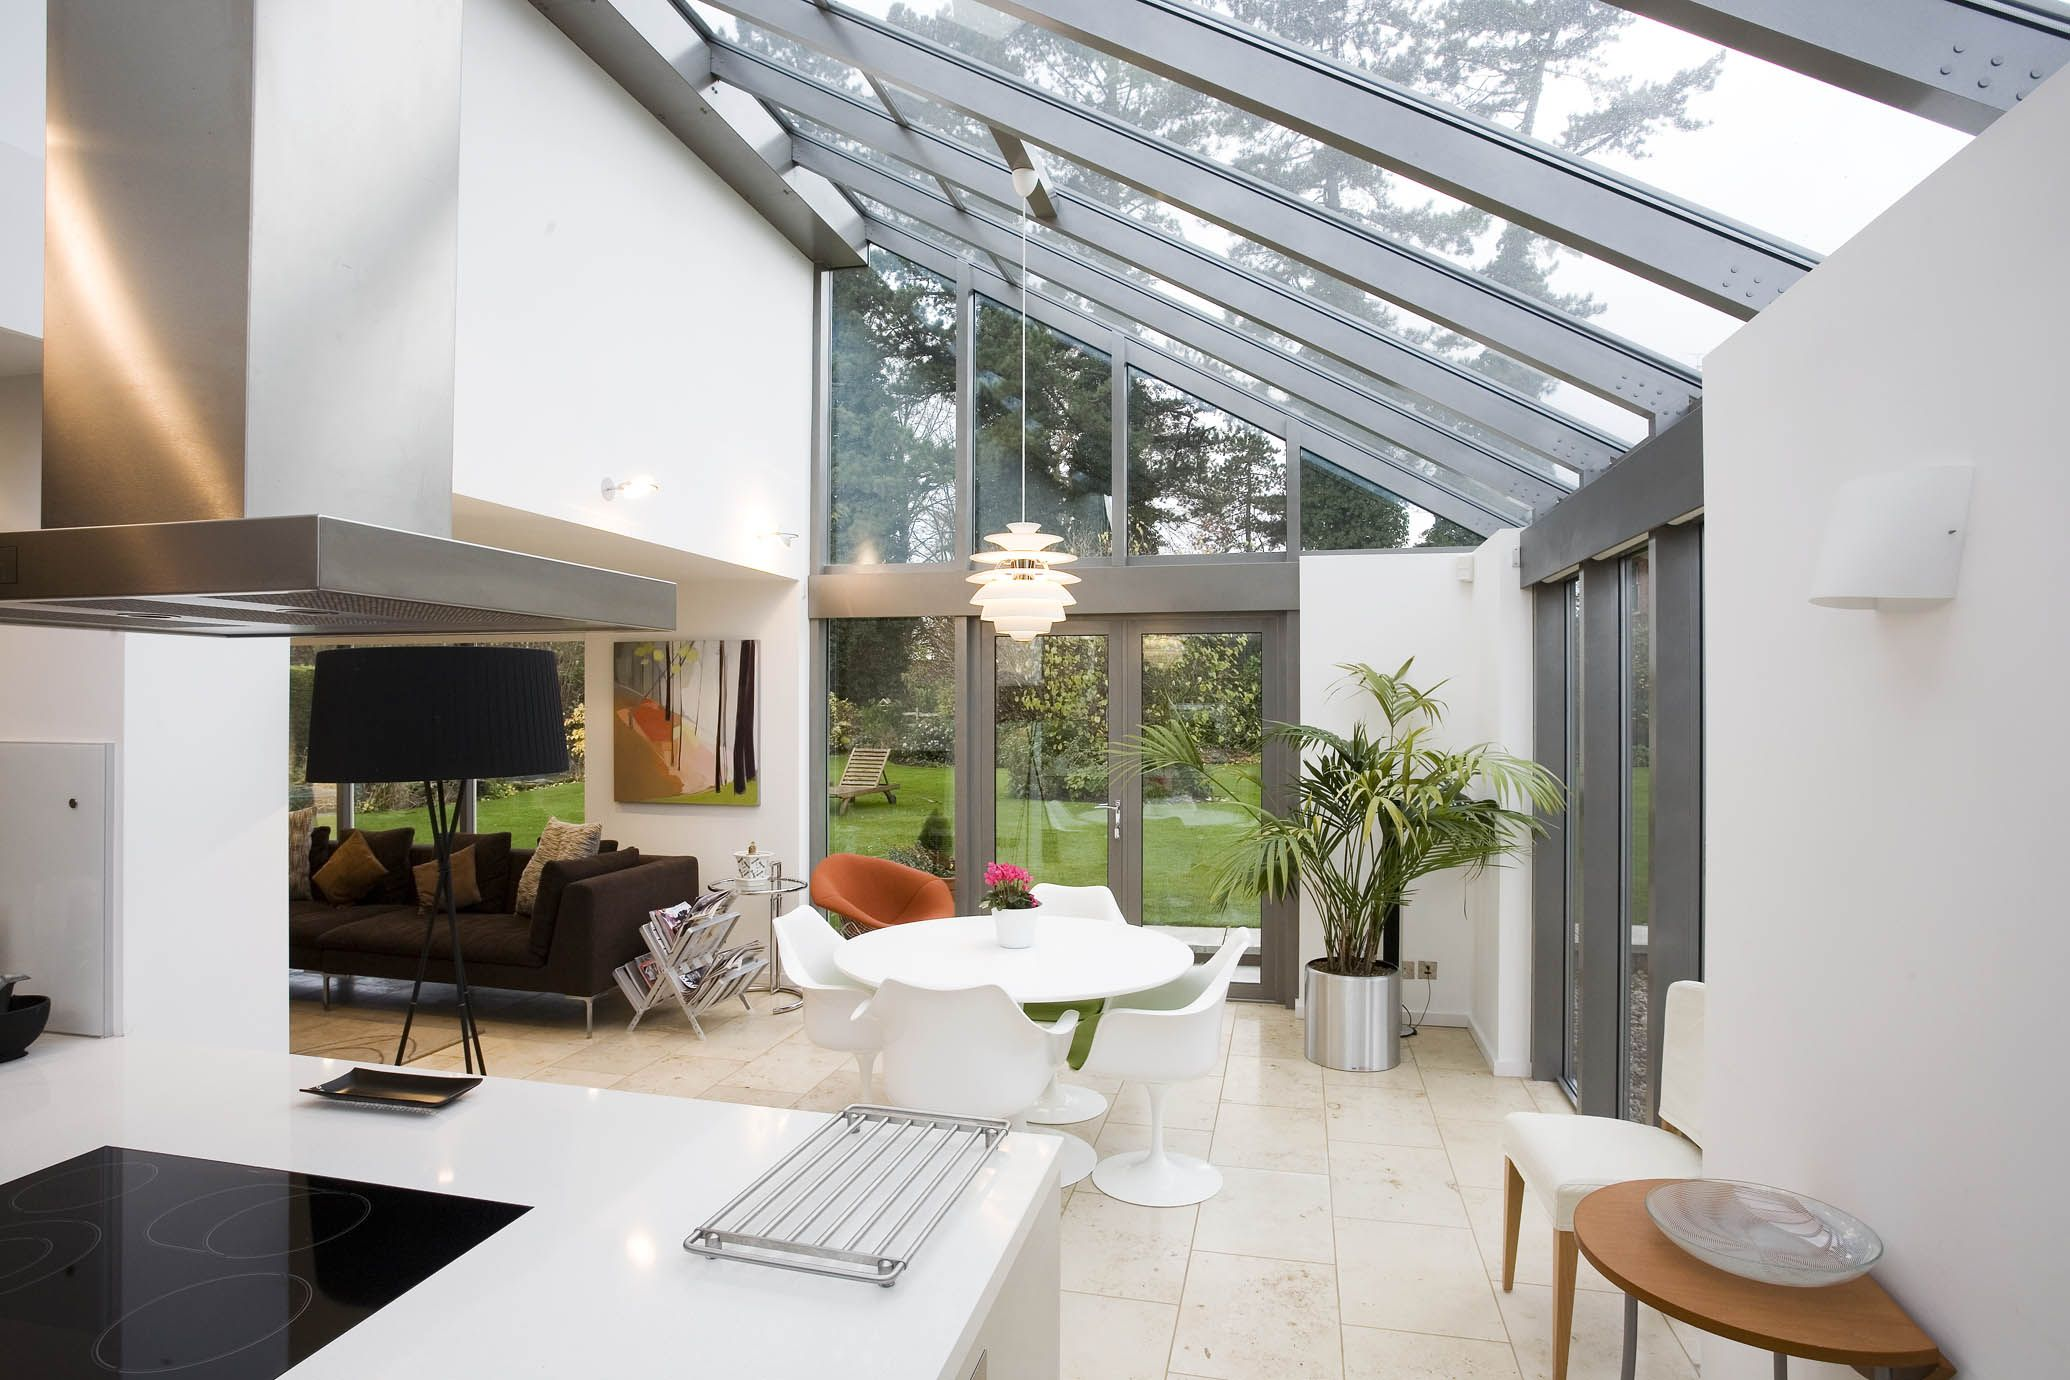 Kitchen Extension Orangery Google Search Dream House